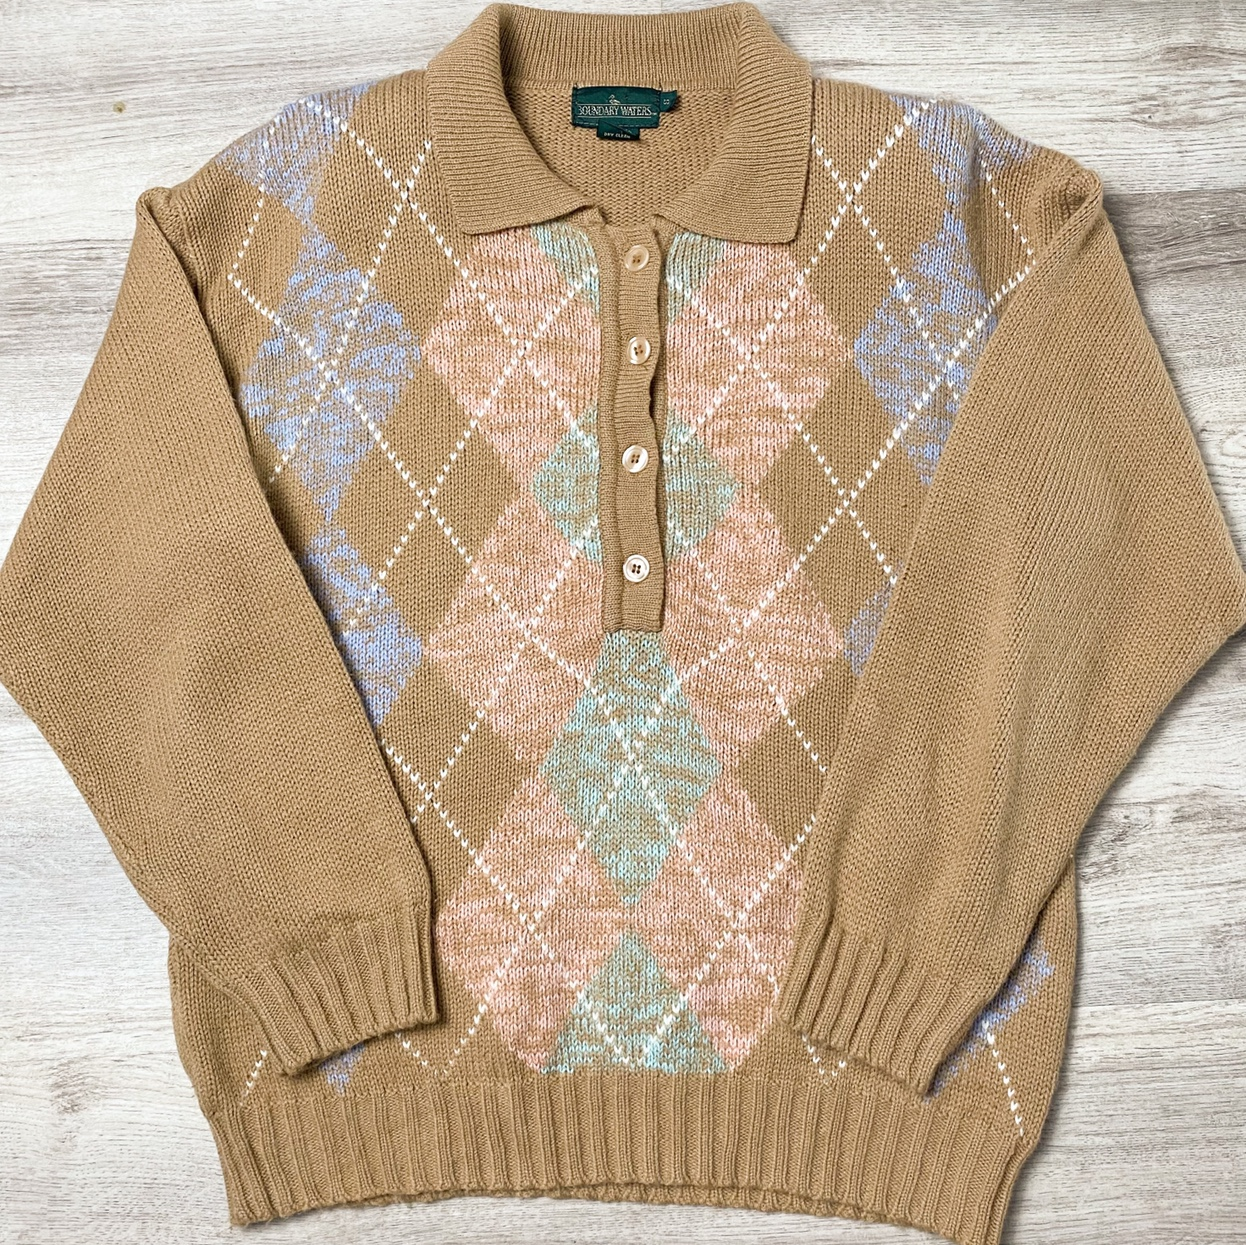 🧸 Vintage Argyle Polo Collared Sweater 🧸